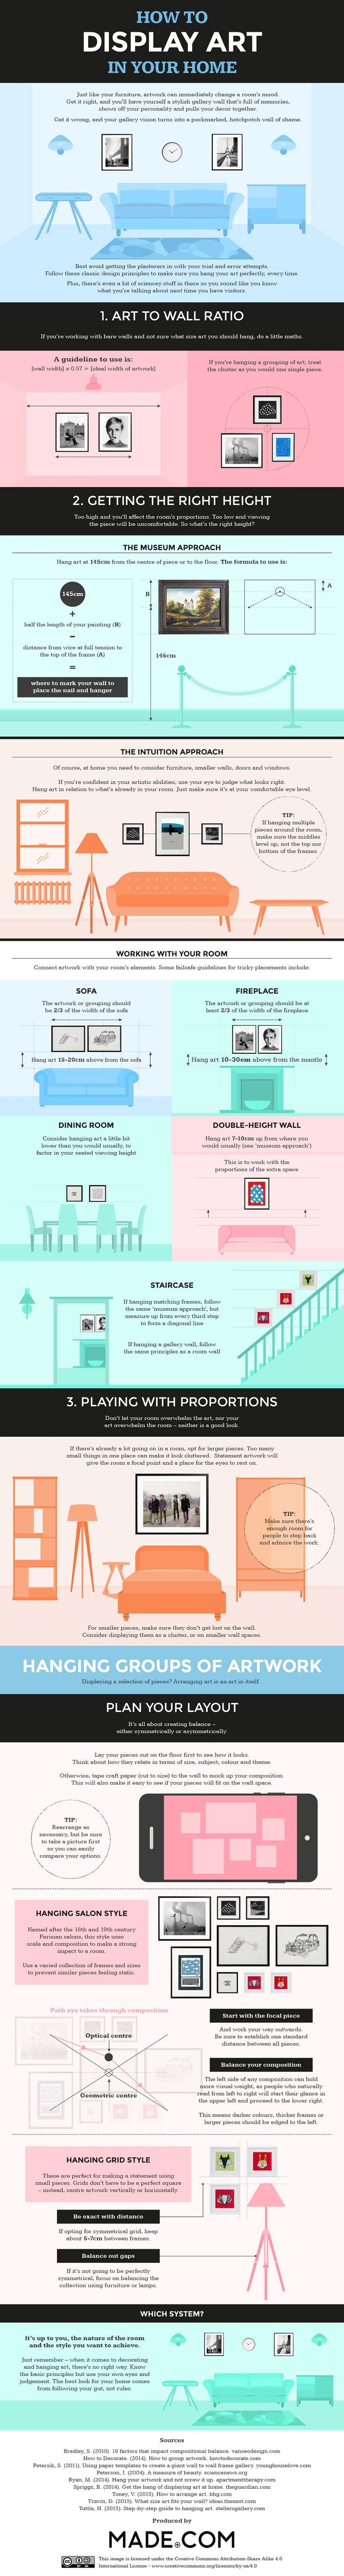 Welcome to our collection of 25 awesome and useful infographics and cheat sheets that we have curated from around the web about interior design and home decoration topics. We believe that every home owner must see the following collection and bookmark this page for easy reference.  The infographics and cheat sheets below include topics such as basic principles of interior design, best colors for your home, design and decor styles, kitchen-bathroom-living room layout guides, kitchen space…